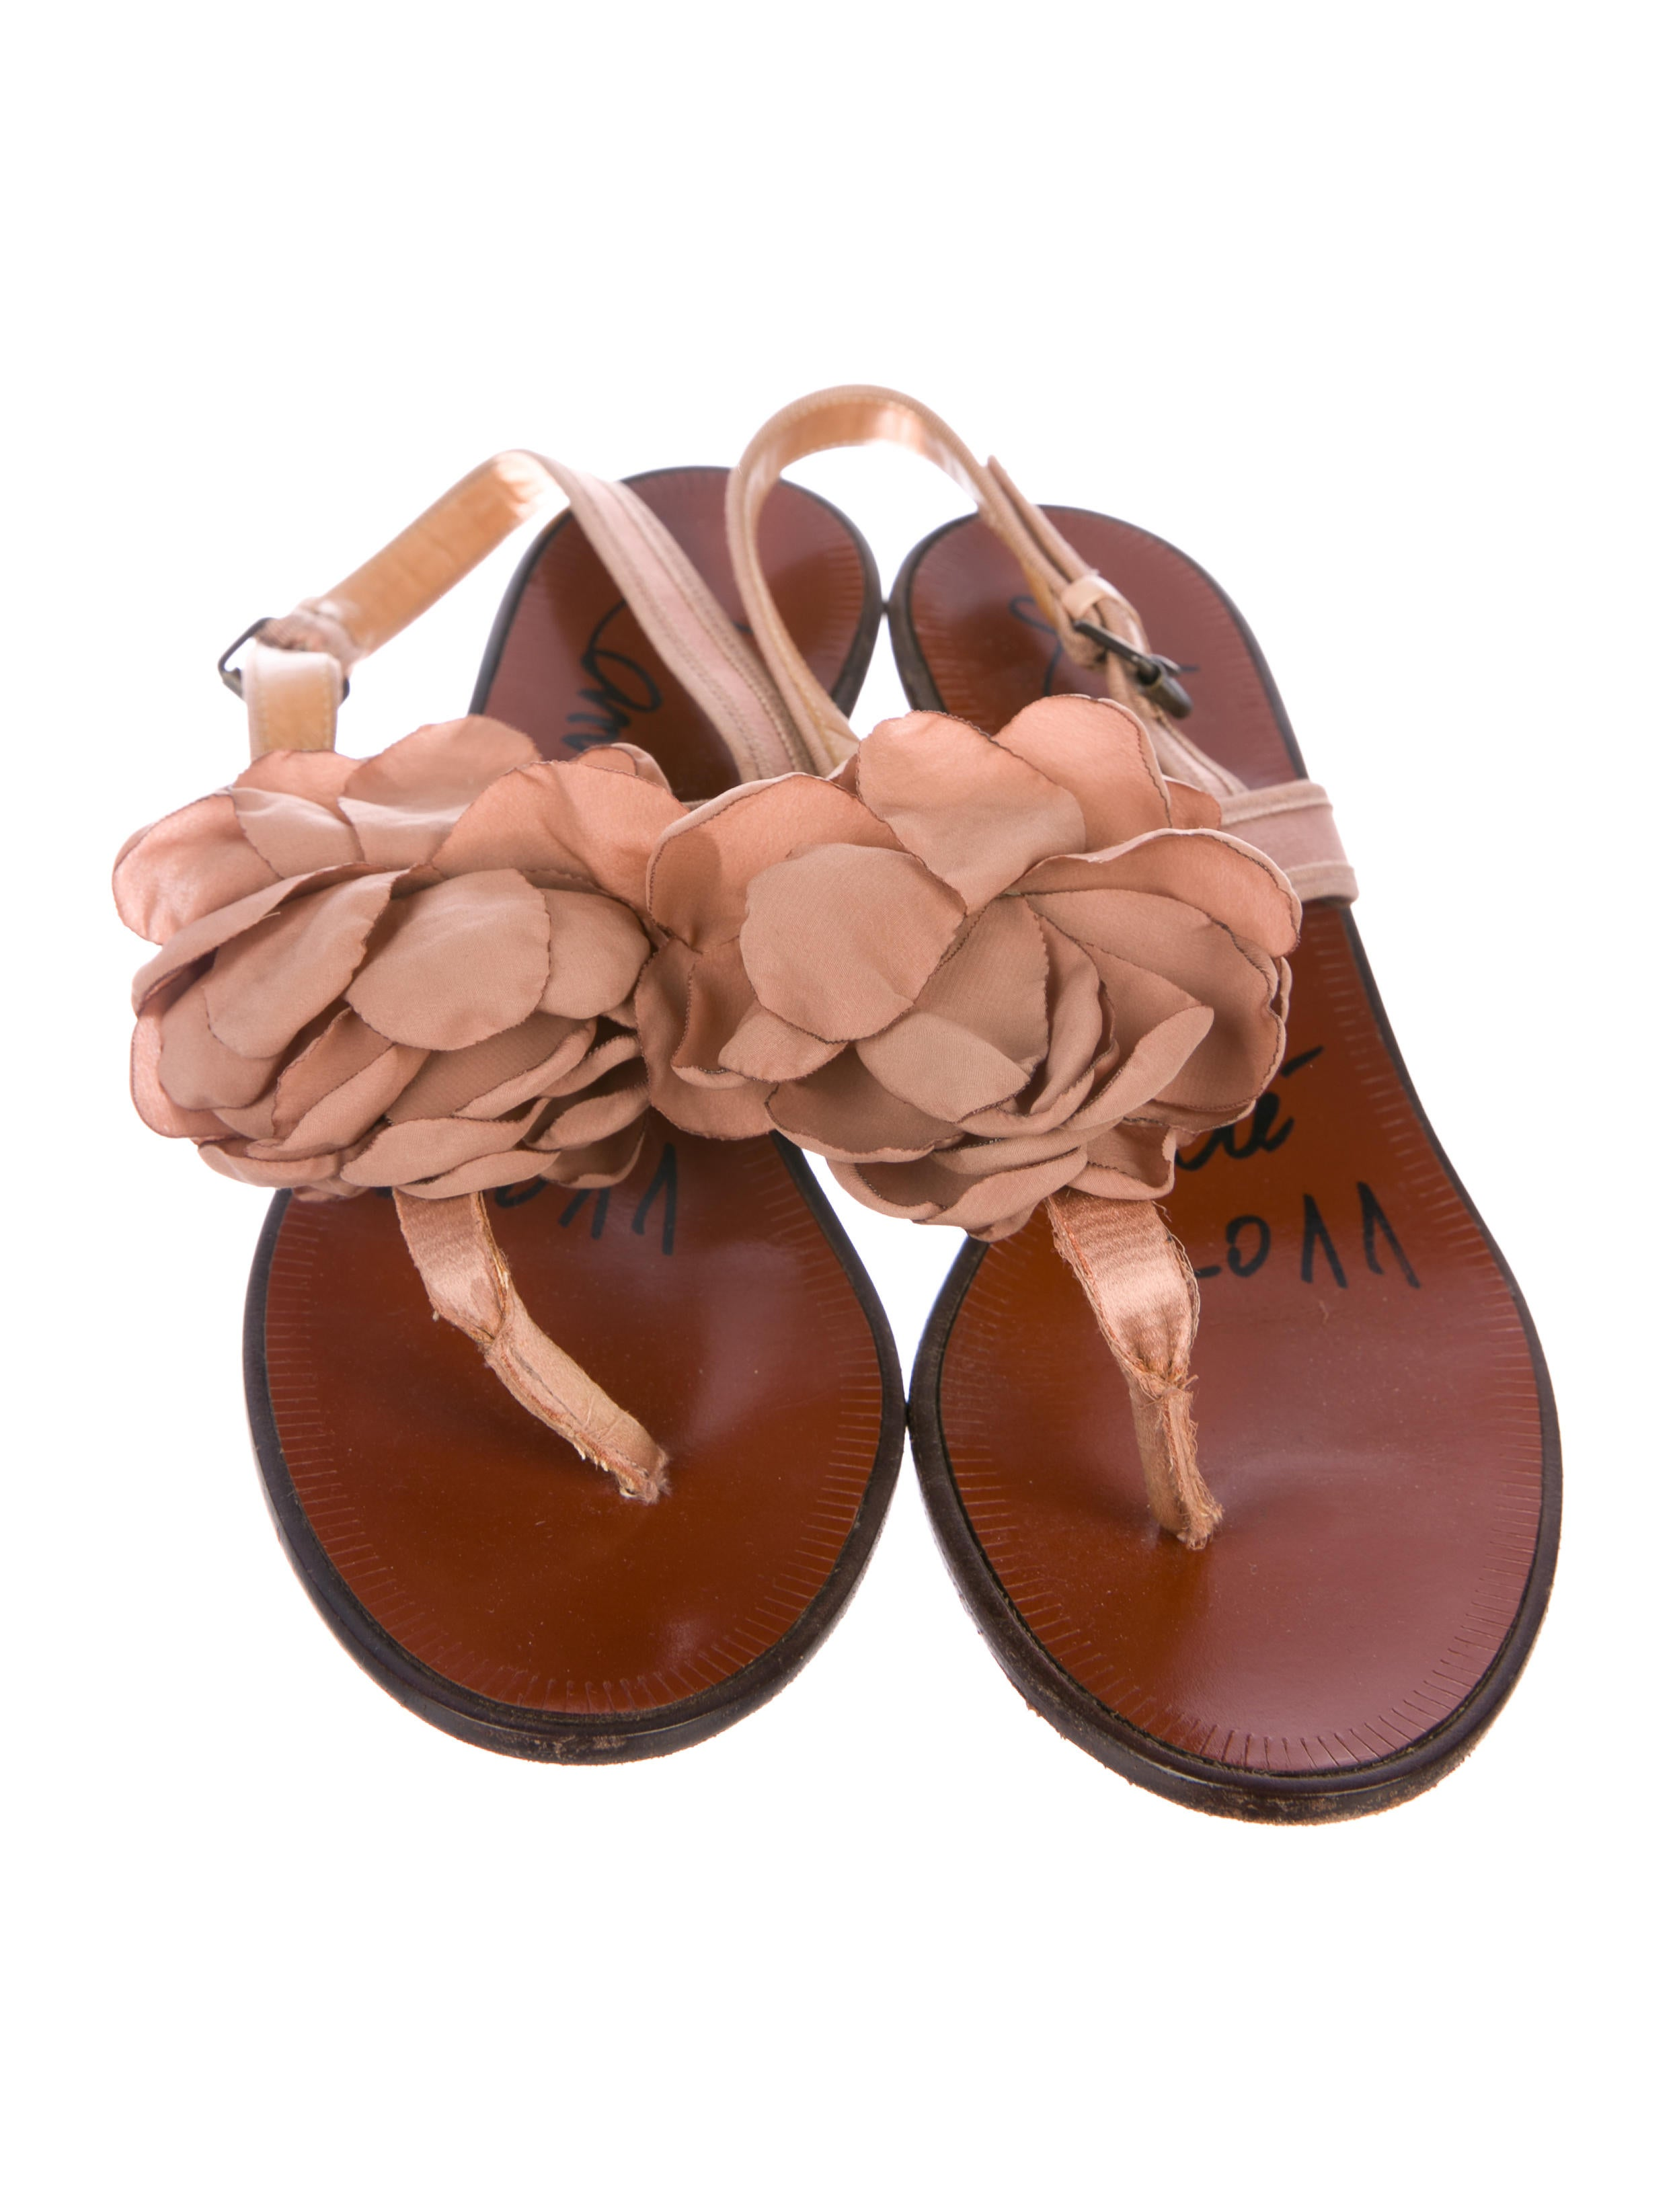 Lanvin Floral Satin Thong Sandals store pay with paypal for sale Pe0Fm